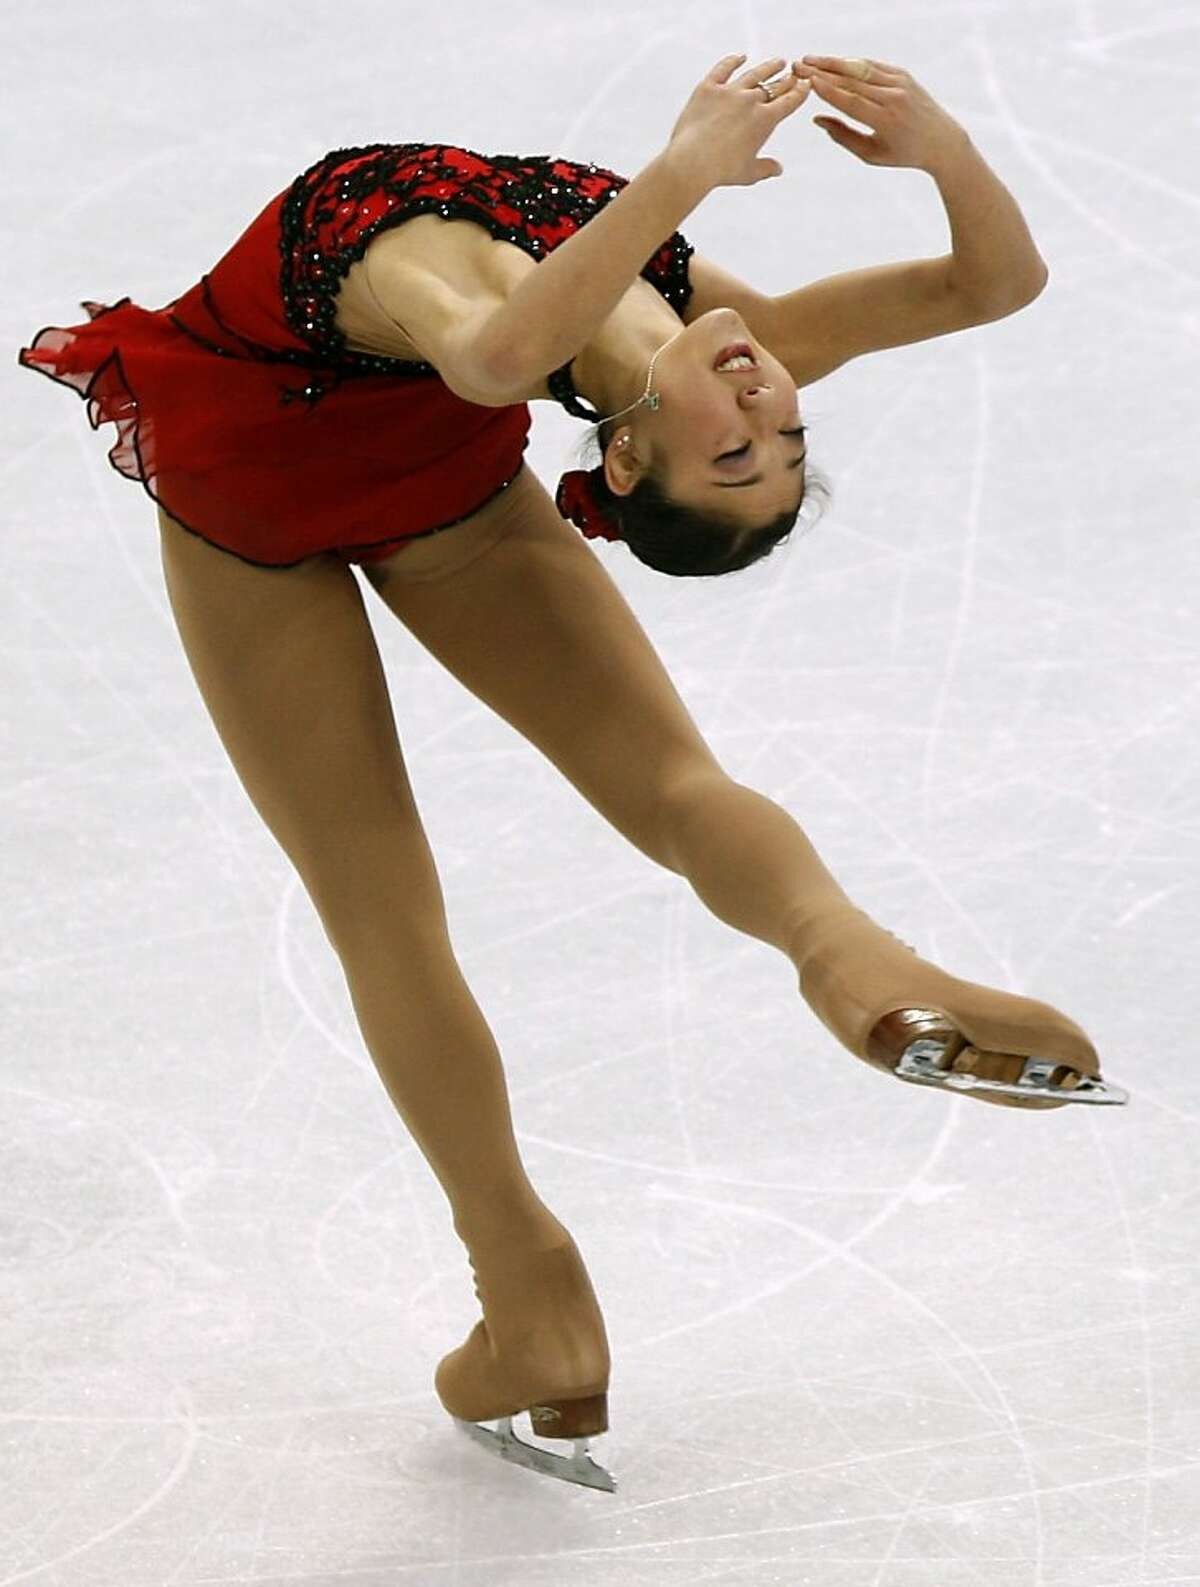 Mirai Nagasu of the United States performs in the free program of the women's figure skating competition at the Winter Olympic Games in Vancouver, British Columbia, on Thursday, Feb. 25, 2010. Paul Chinn/Chronicle Olympic Bureau